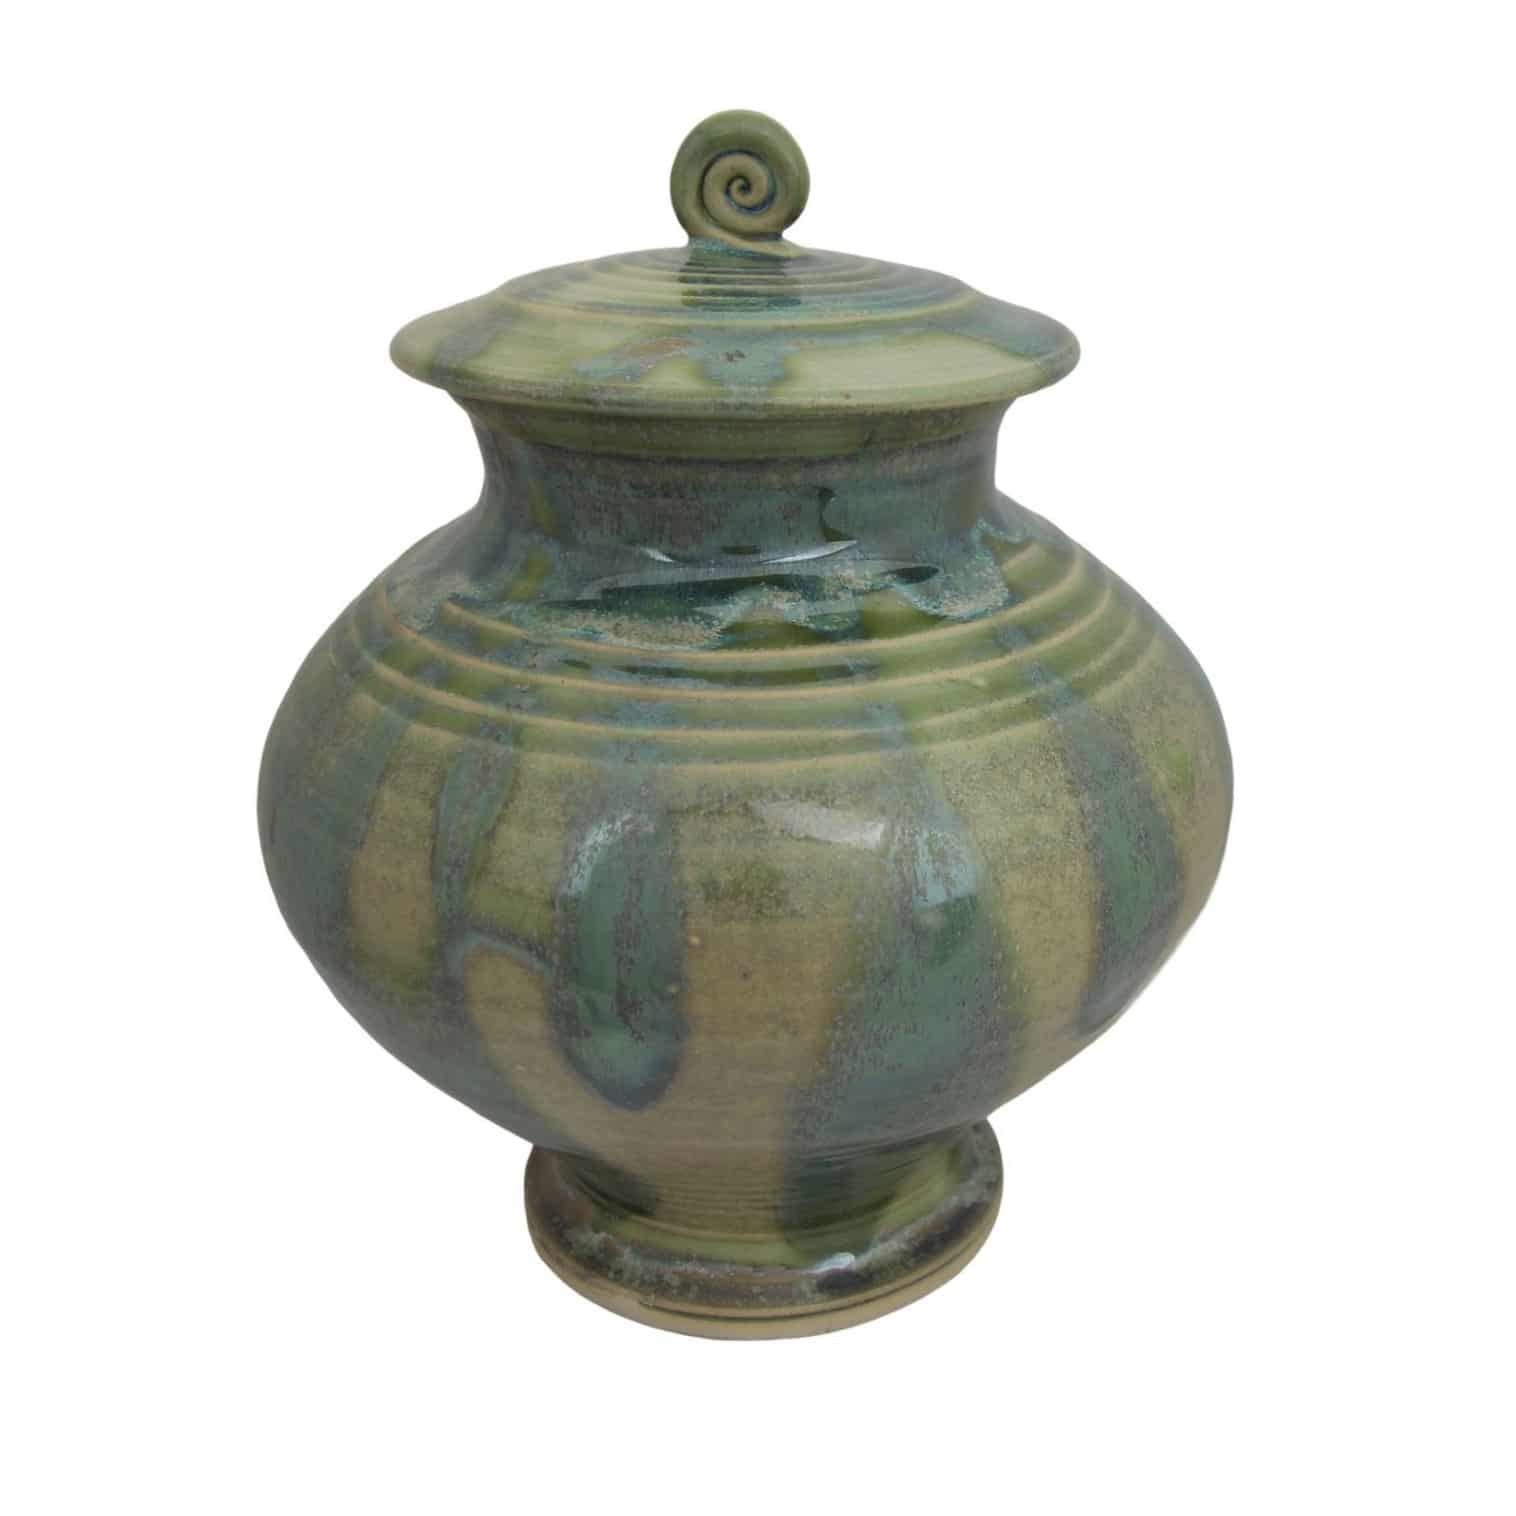 boann cremation urn in fern green with wide centre and spiral detailing on the lid